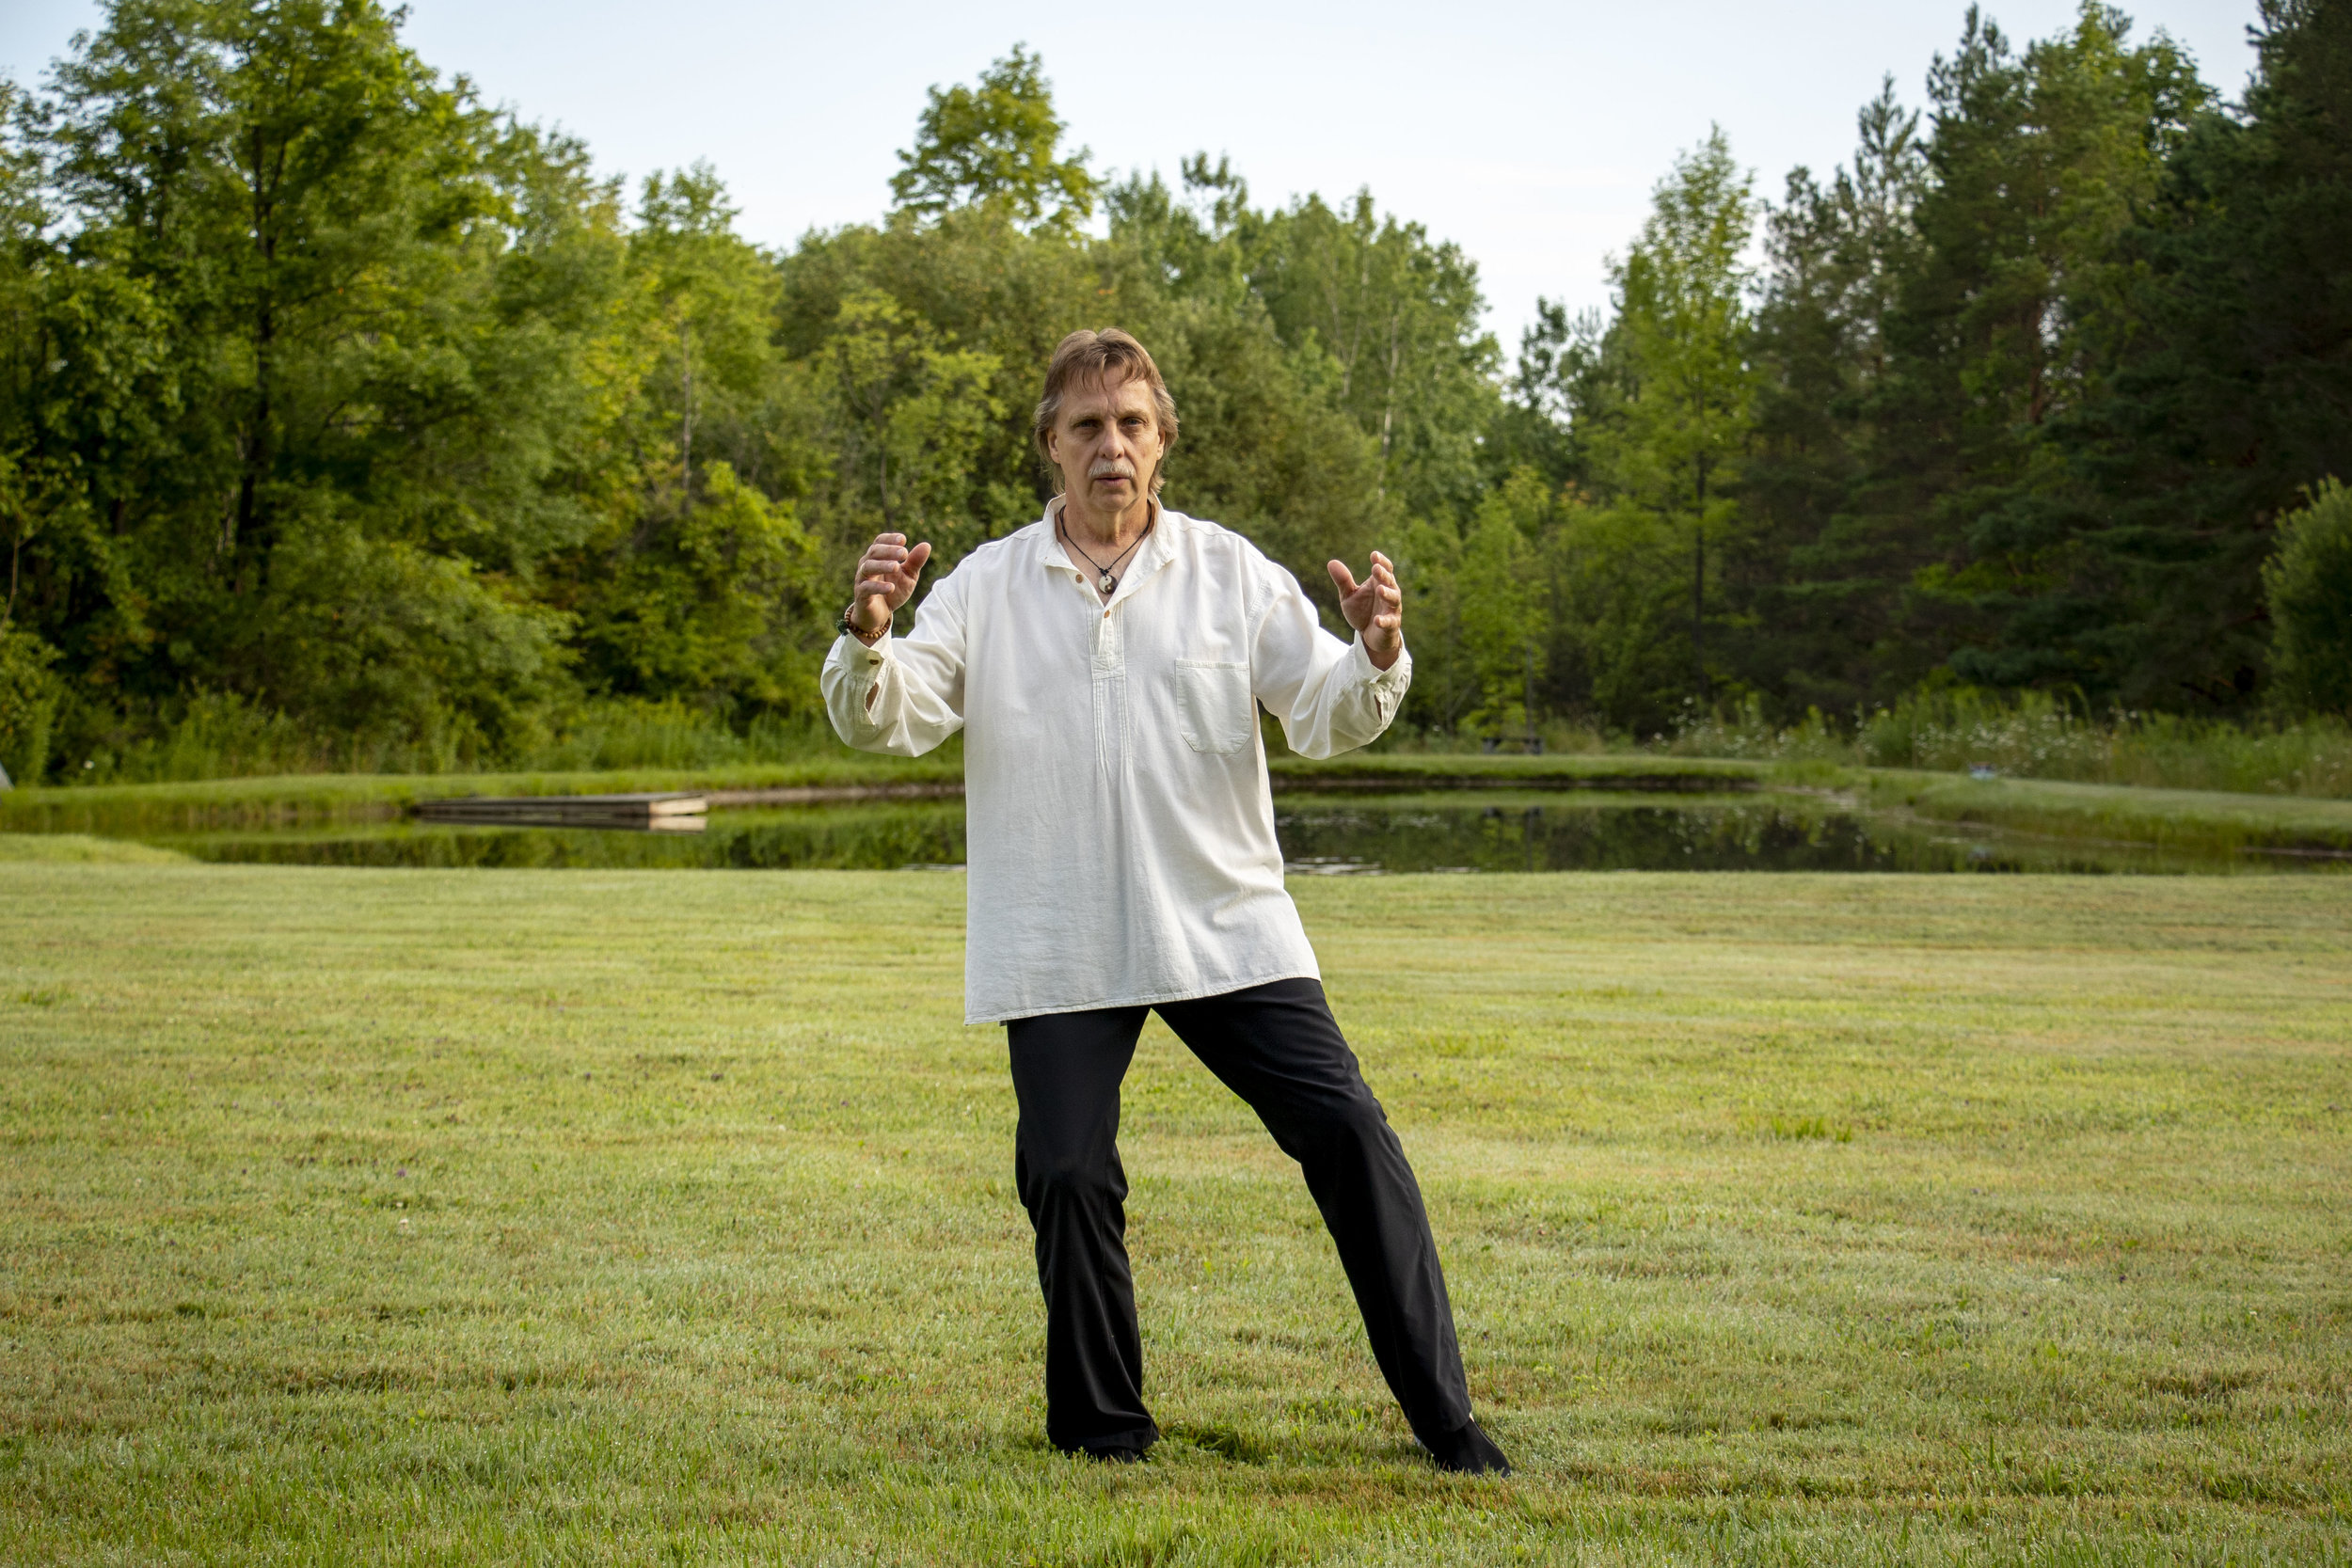 Meditation in Motion/QiGong - A Chinese system of gentle exercises, breathing and meditation.